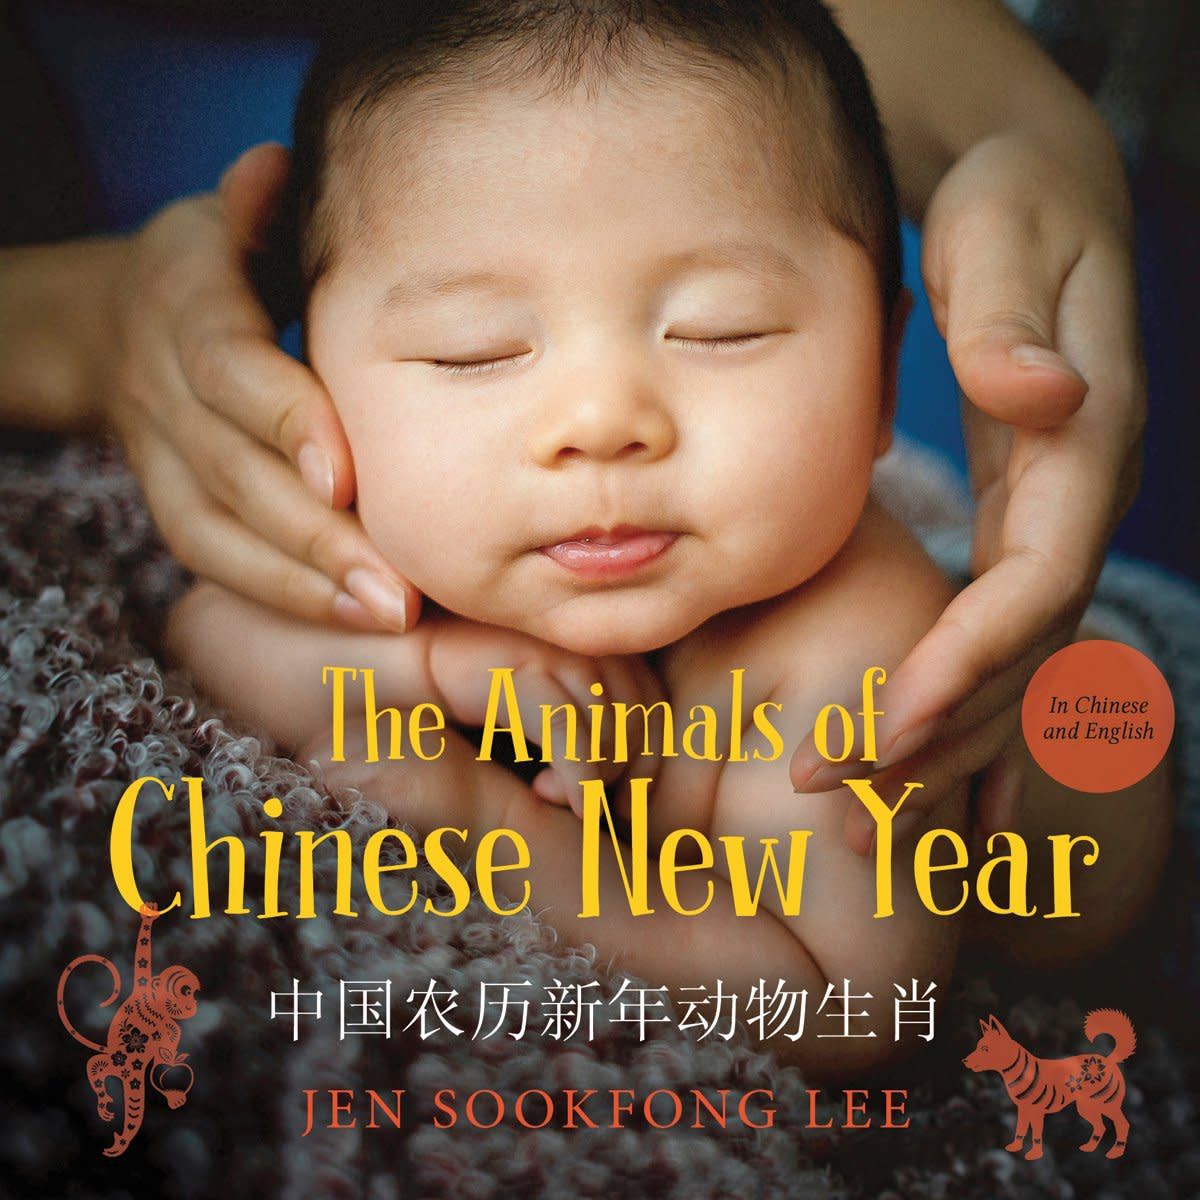 The Animals of the Chinese New Year by Jen Sookfong Lee